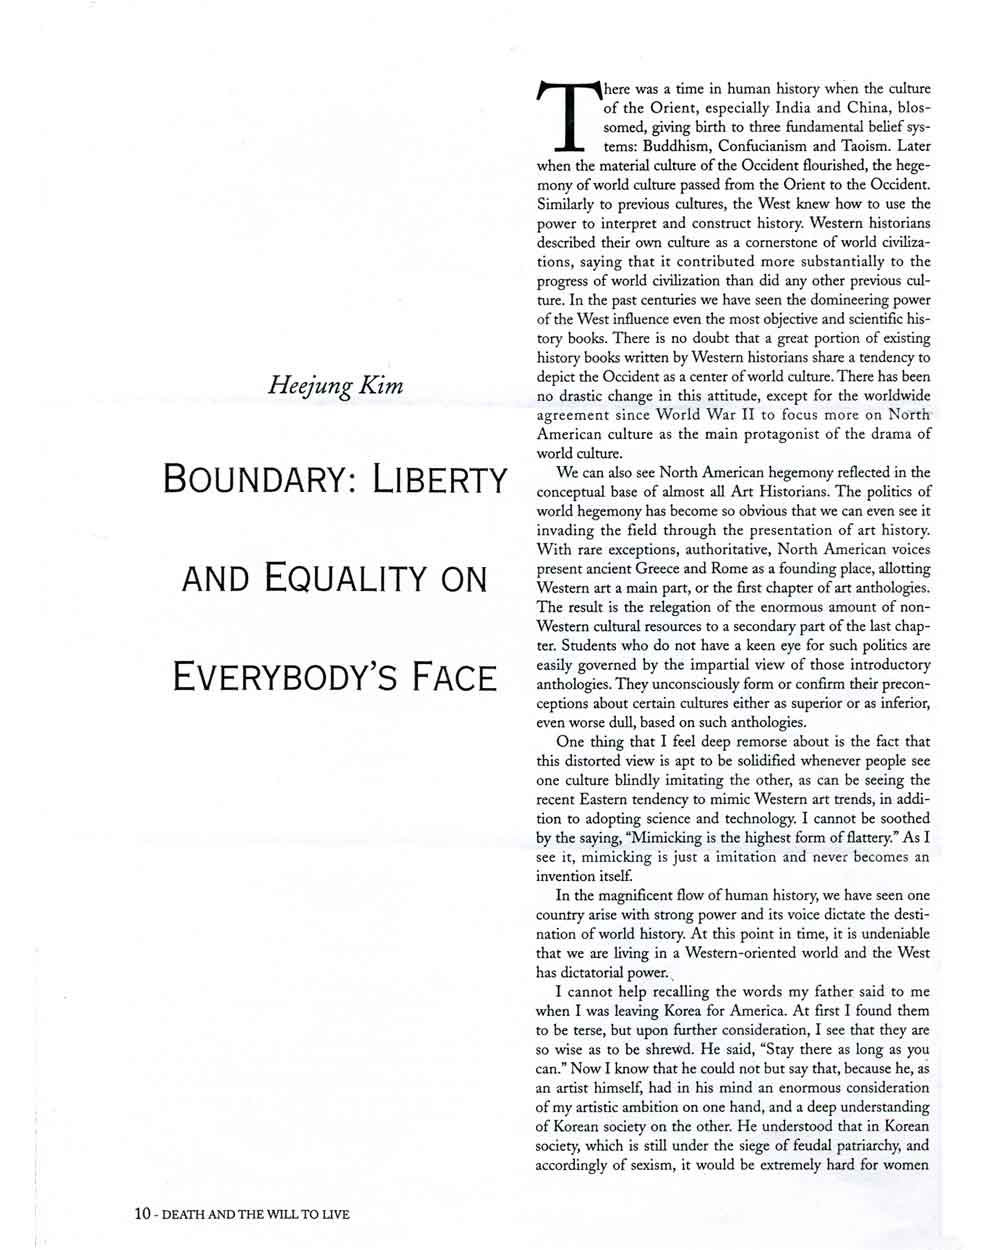 Boundary, article, pg 1